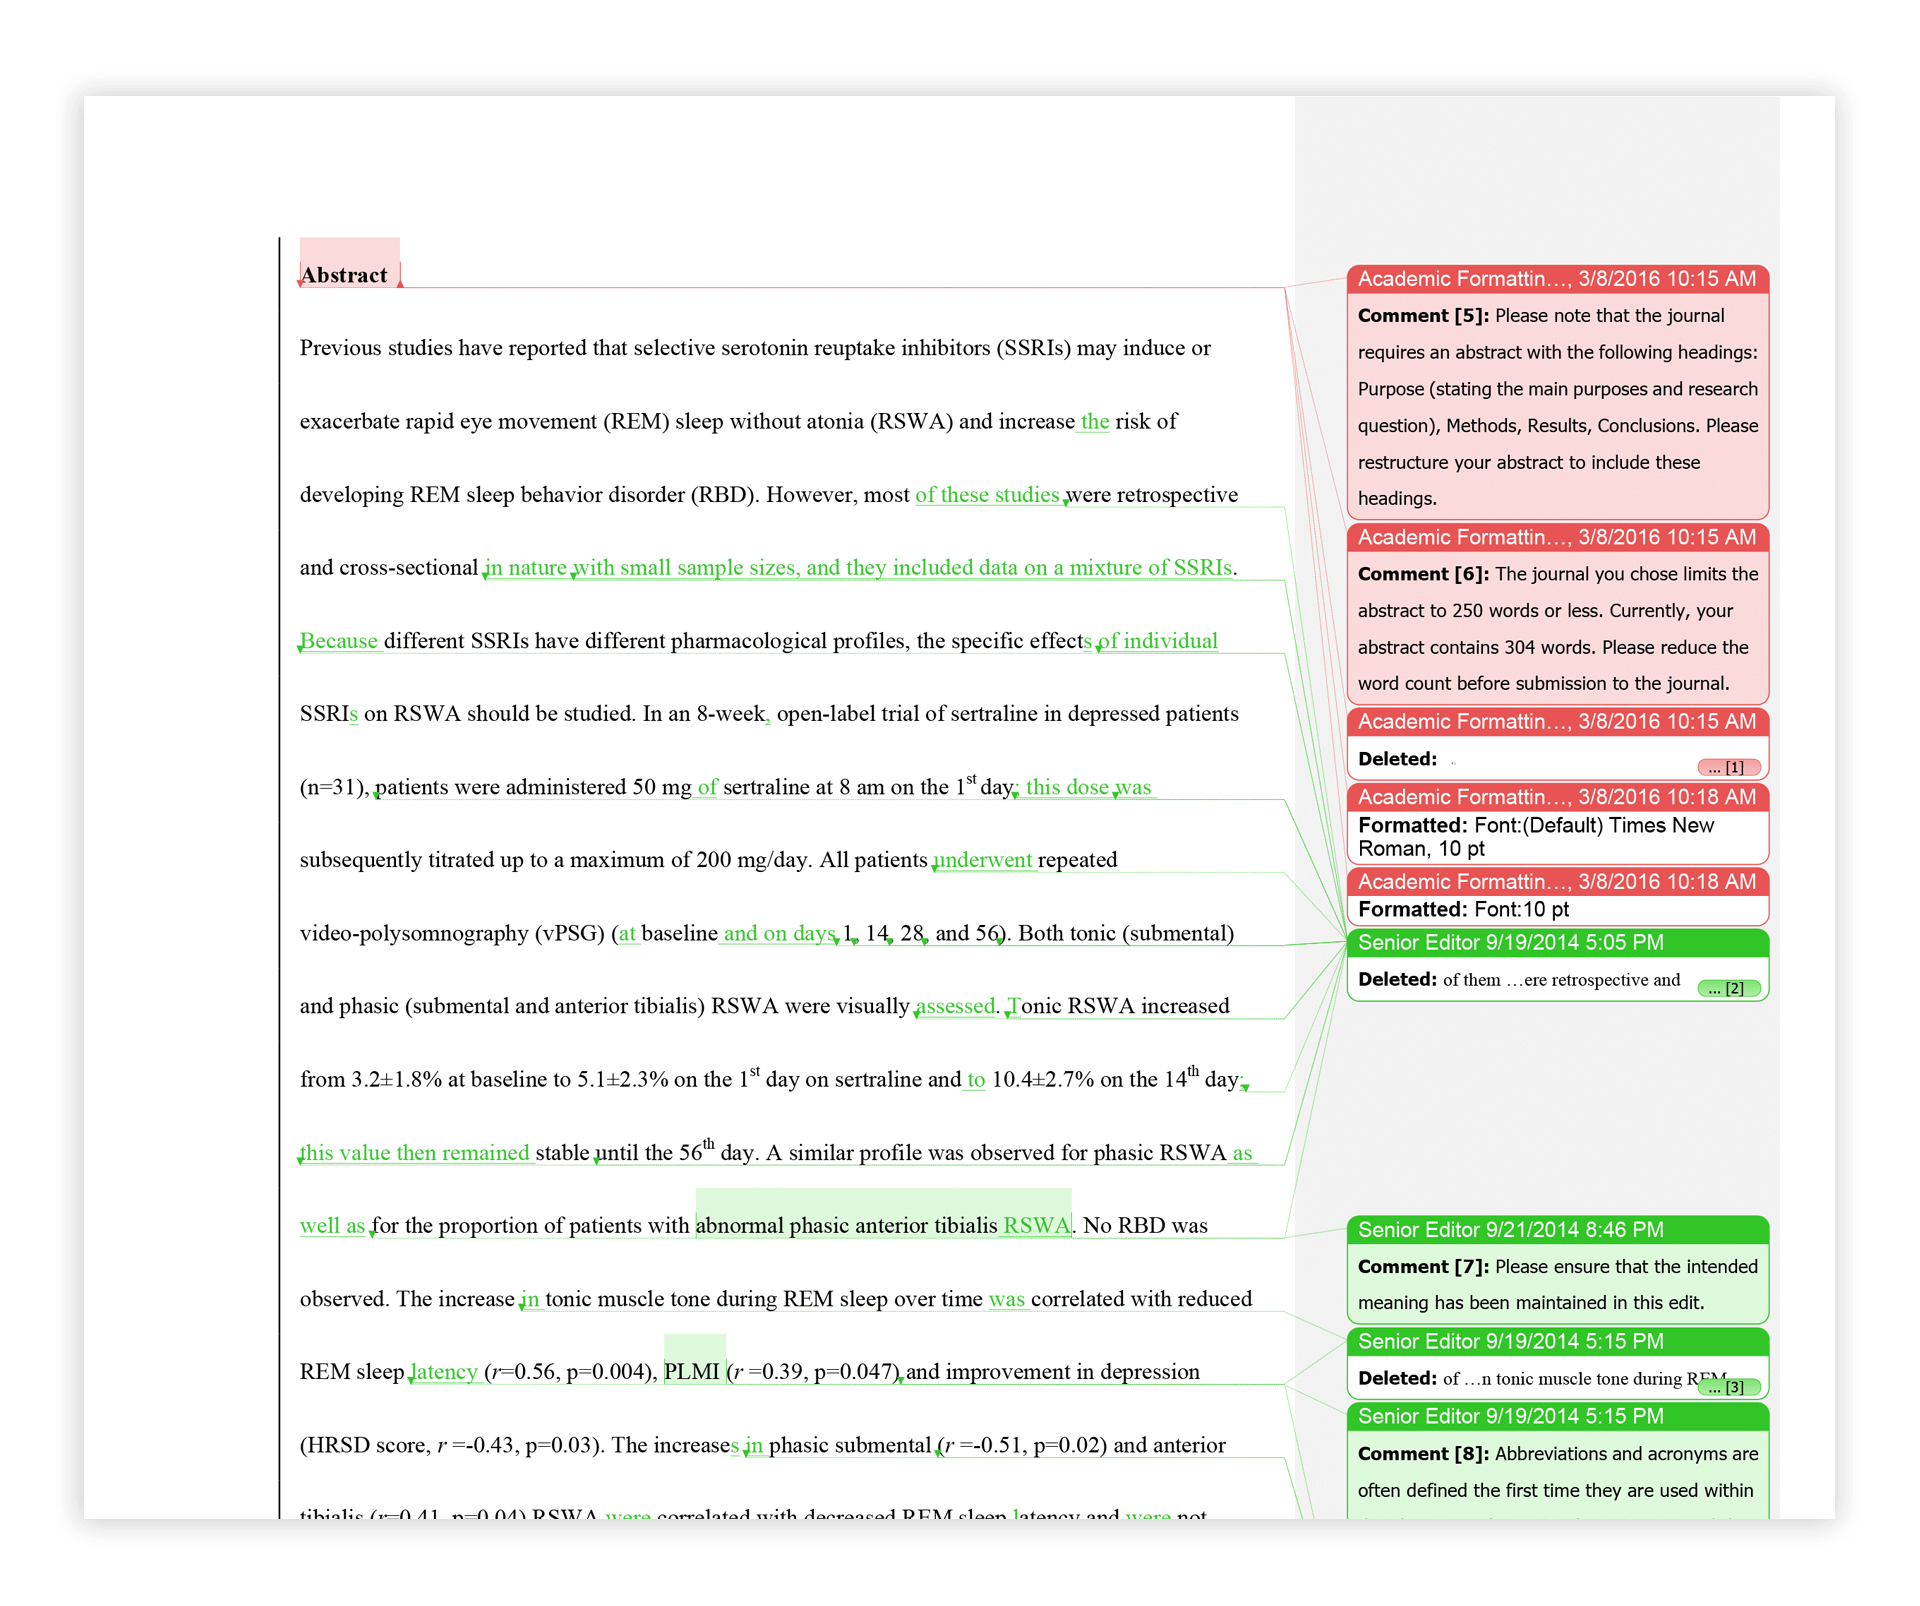 Formatting_Headings.png